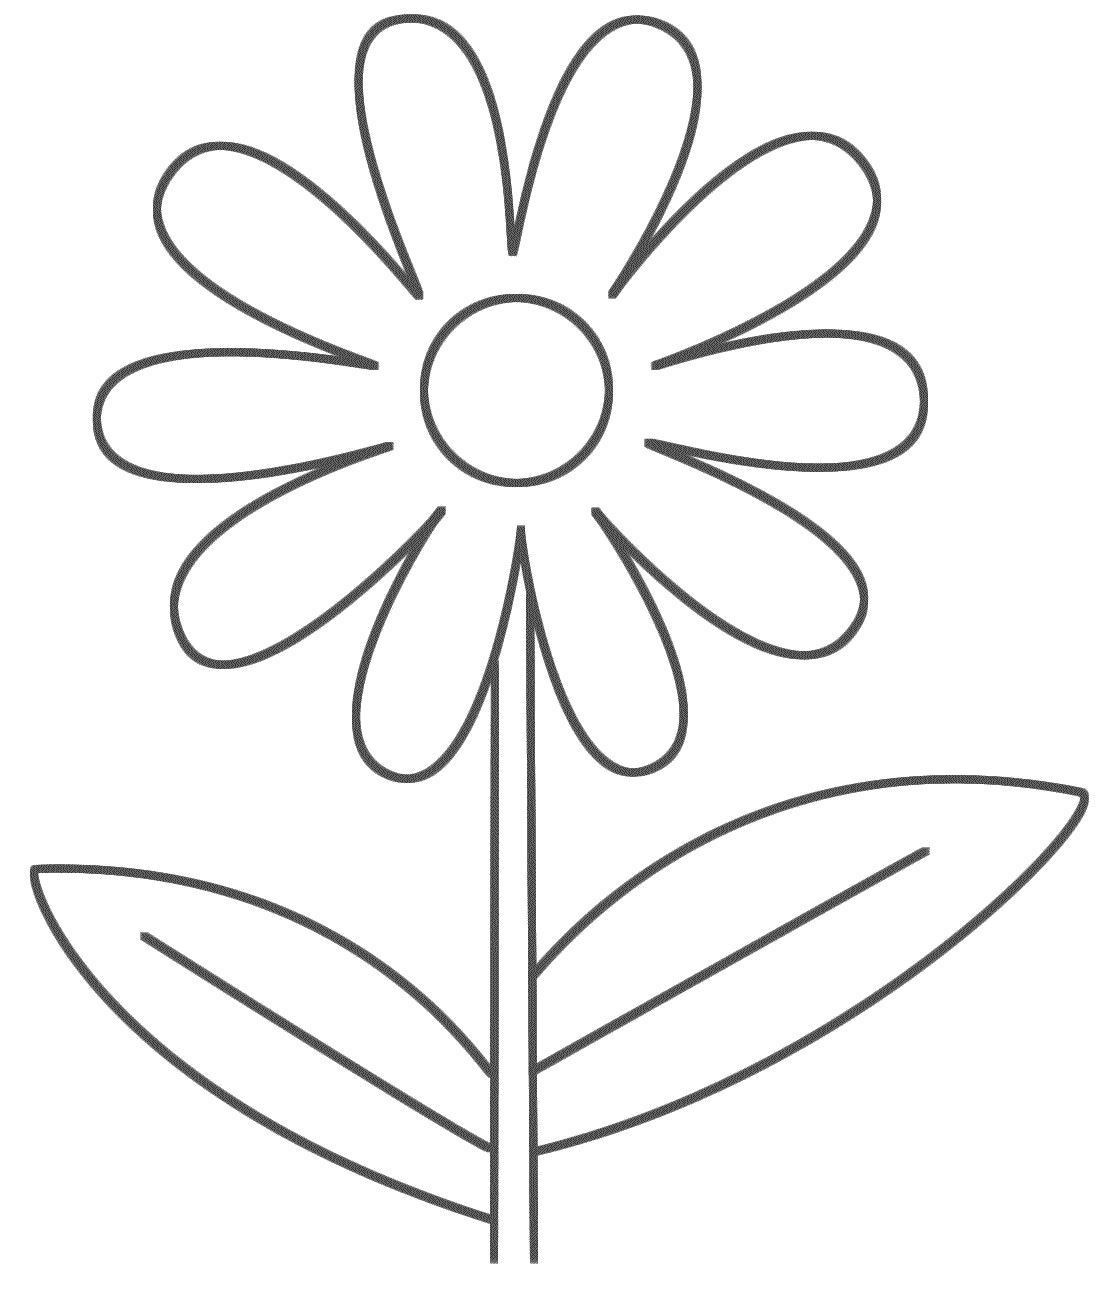 Simple Coloring Pages 5 Printables Pinterest Patterns and